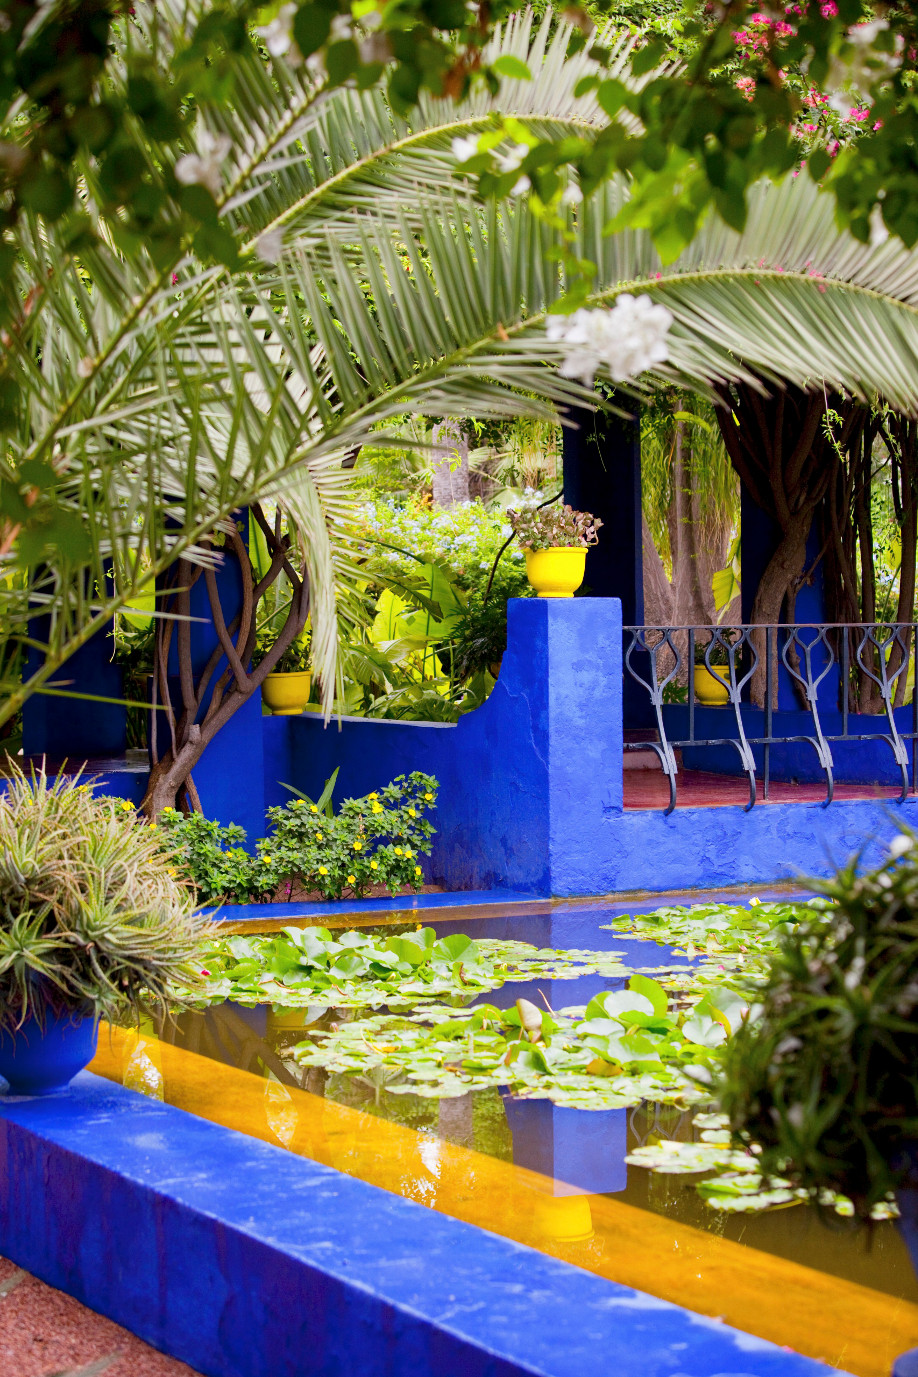 le jardin majorelle le jardin bleu de marrakech westwing. Black Bedroom Furniture Sets. Home Design Ideas